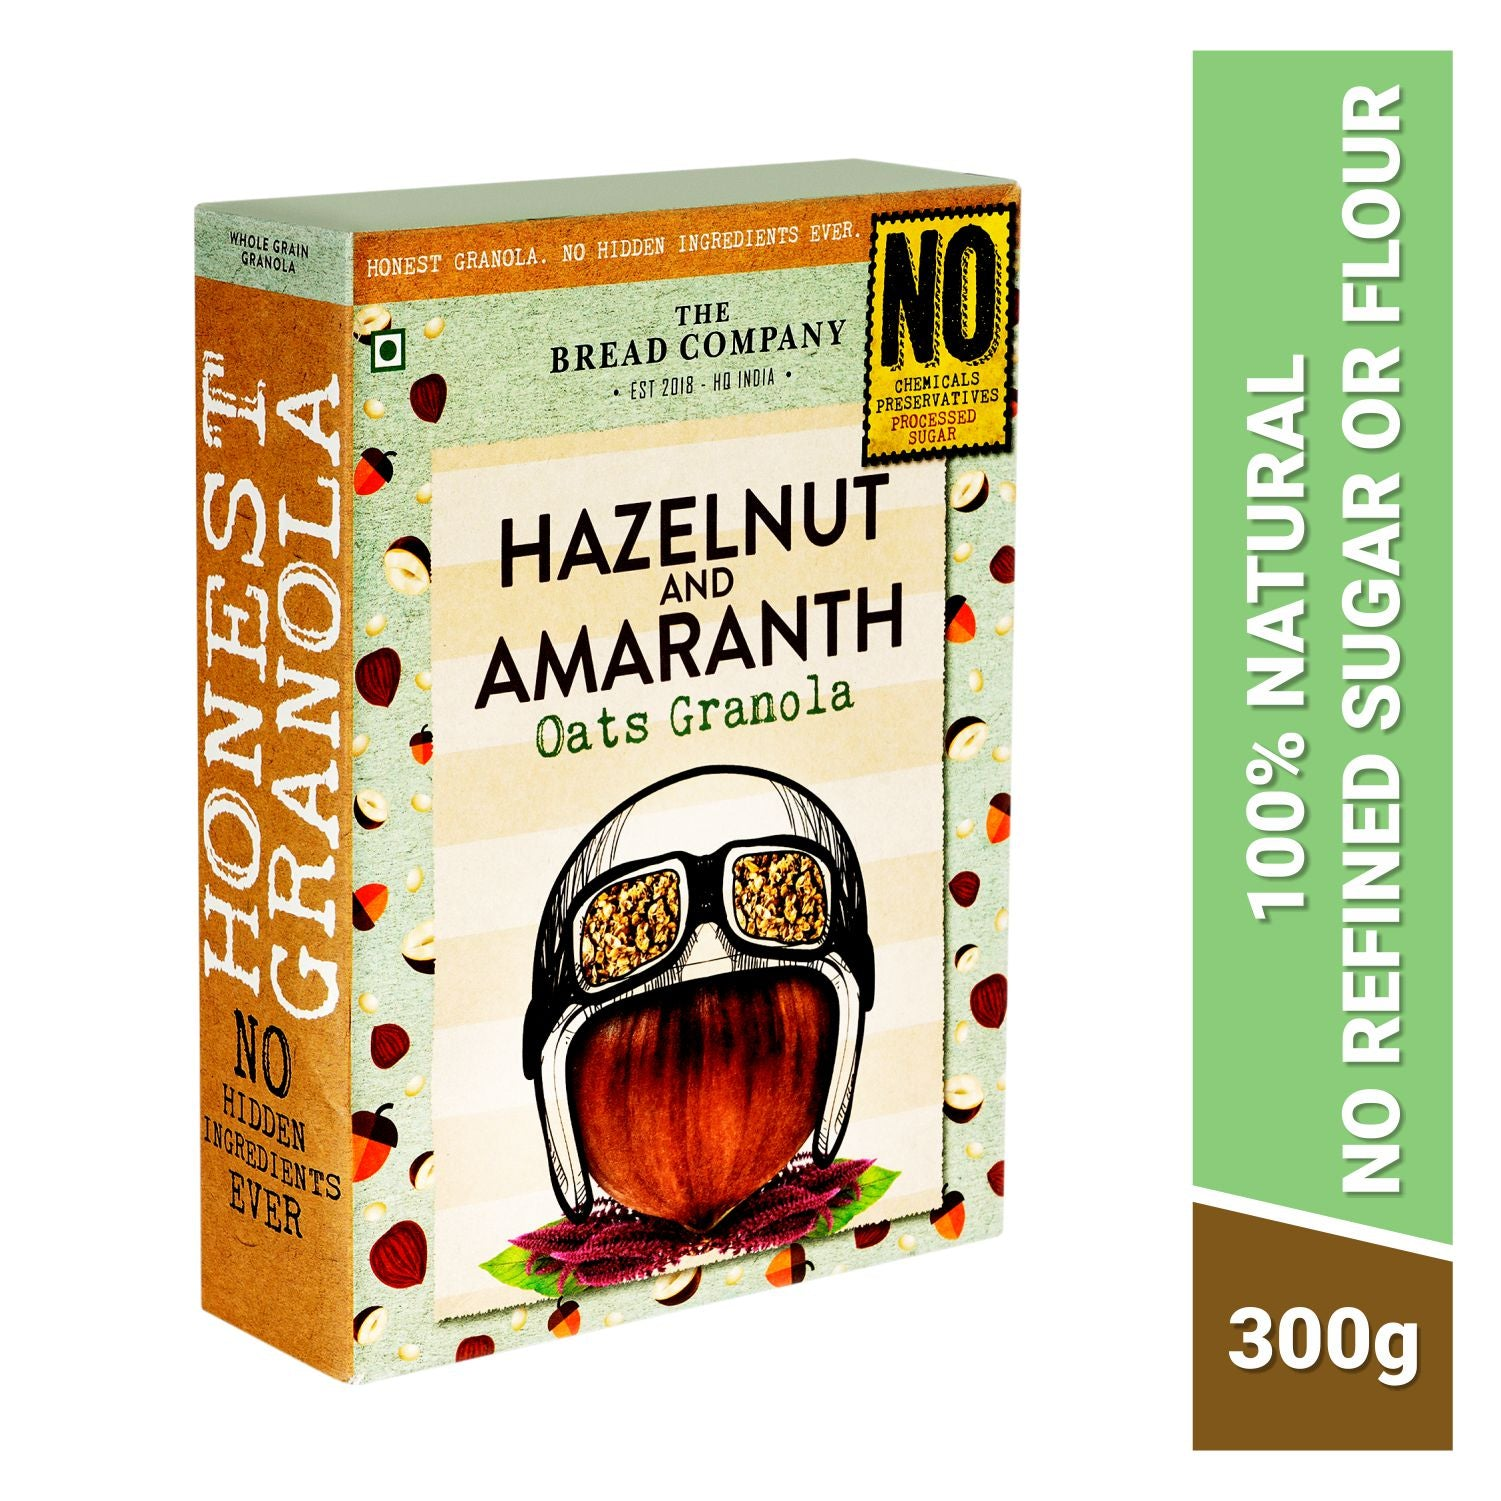 Hazelnut and Amaranth Oats granola - 300 gms